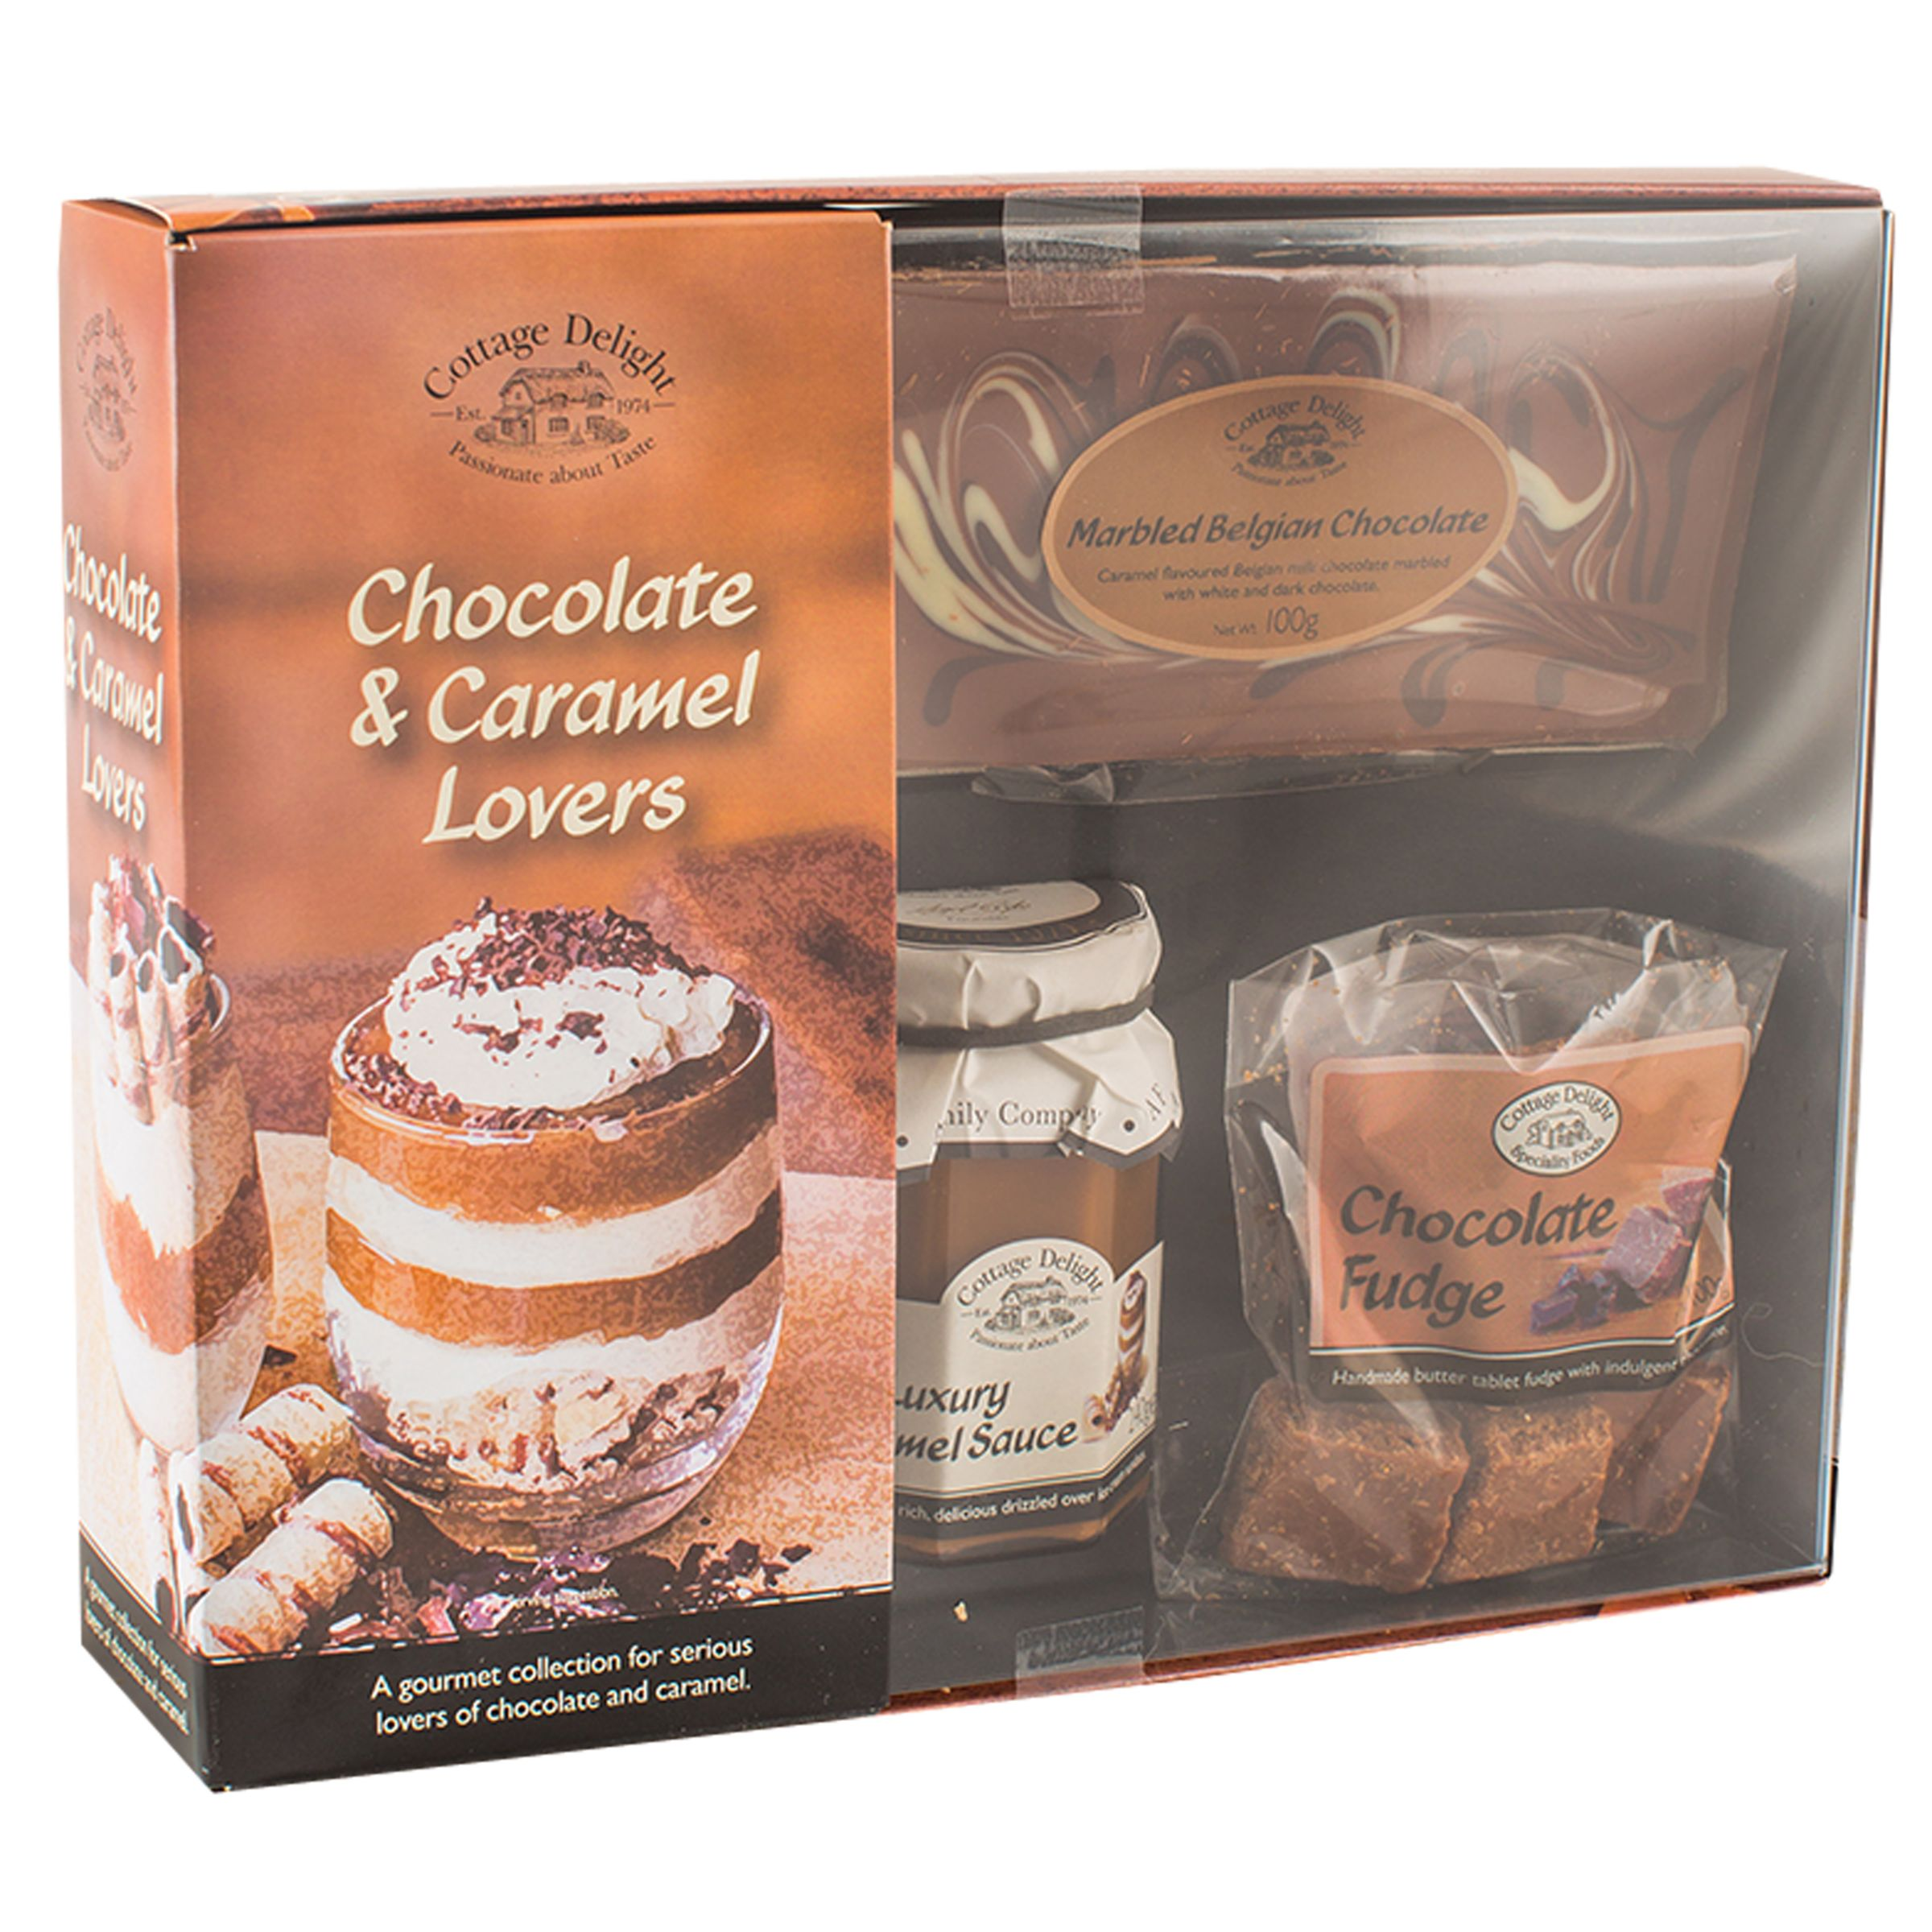 Cottage Delight Cottage Delight Chocolate & Caramel Lovers, 615g